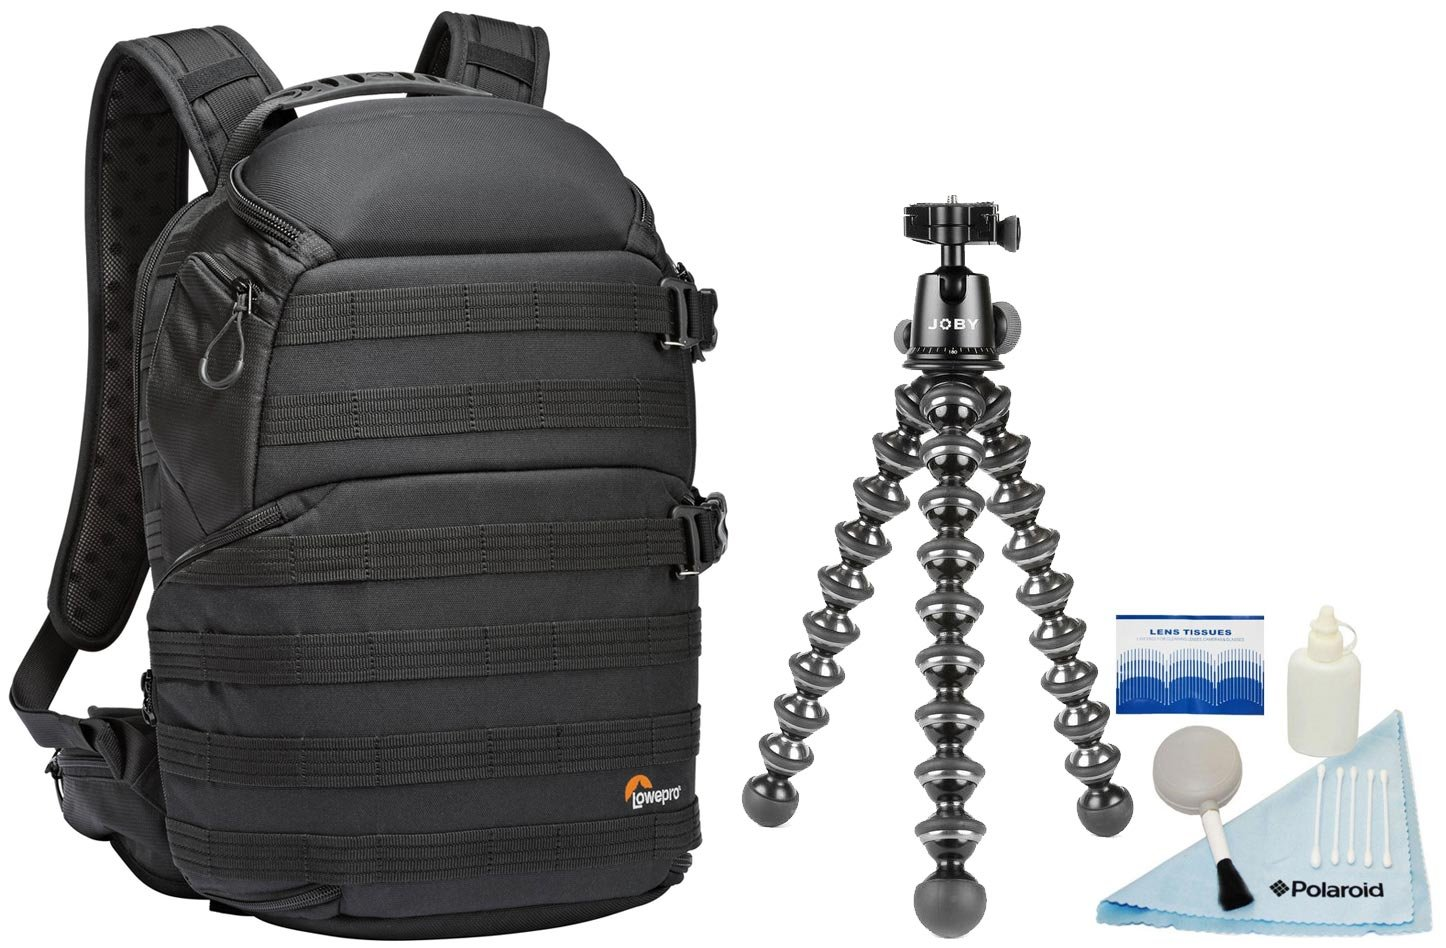 Lowepro ProTactic 350 AW Photo / Up to 13'' Laptop / Tablet / iPad Quick-Access Camera Backpack w/ Joby GorillaPod Focus Flexible Tripod with Ballhead Kit